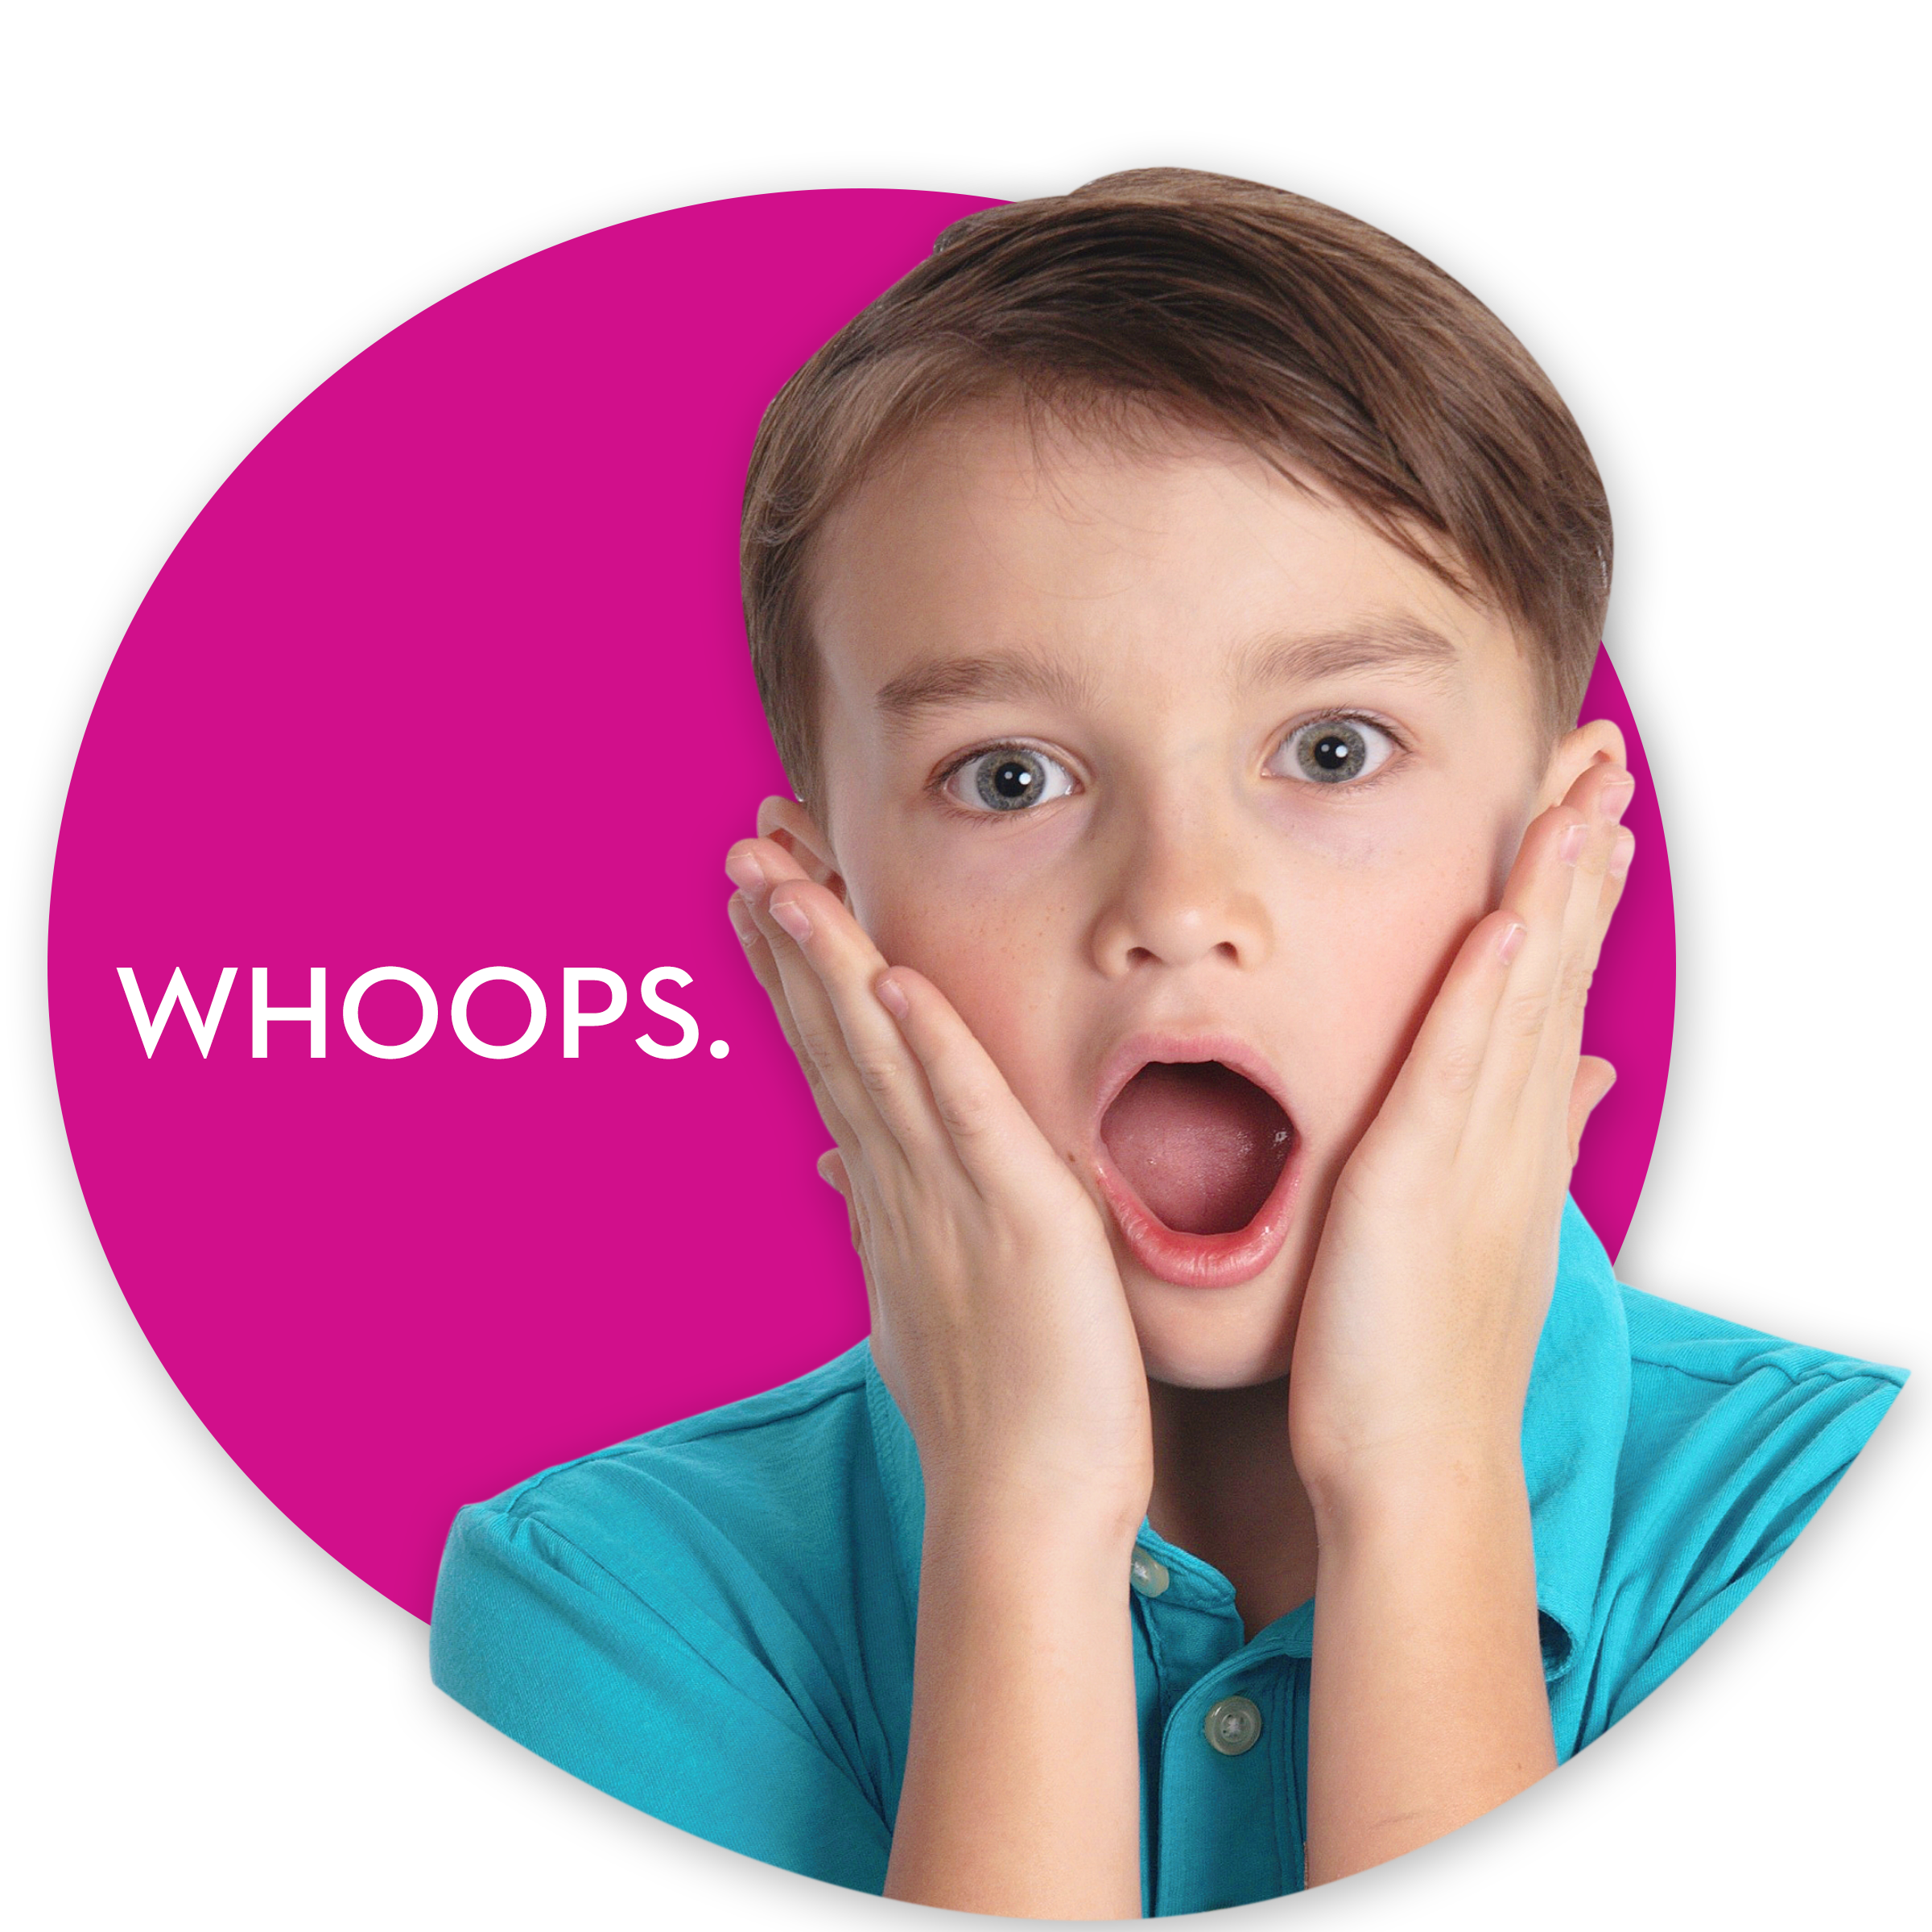 Boy covering sides of cheeks with whoops text. Links to whoops product page.